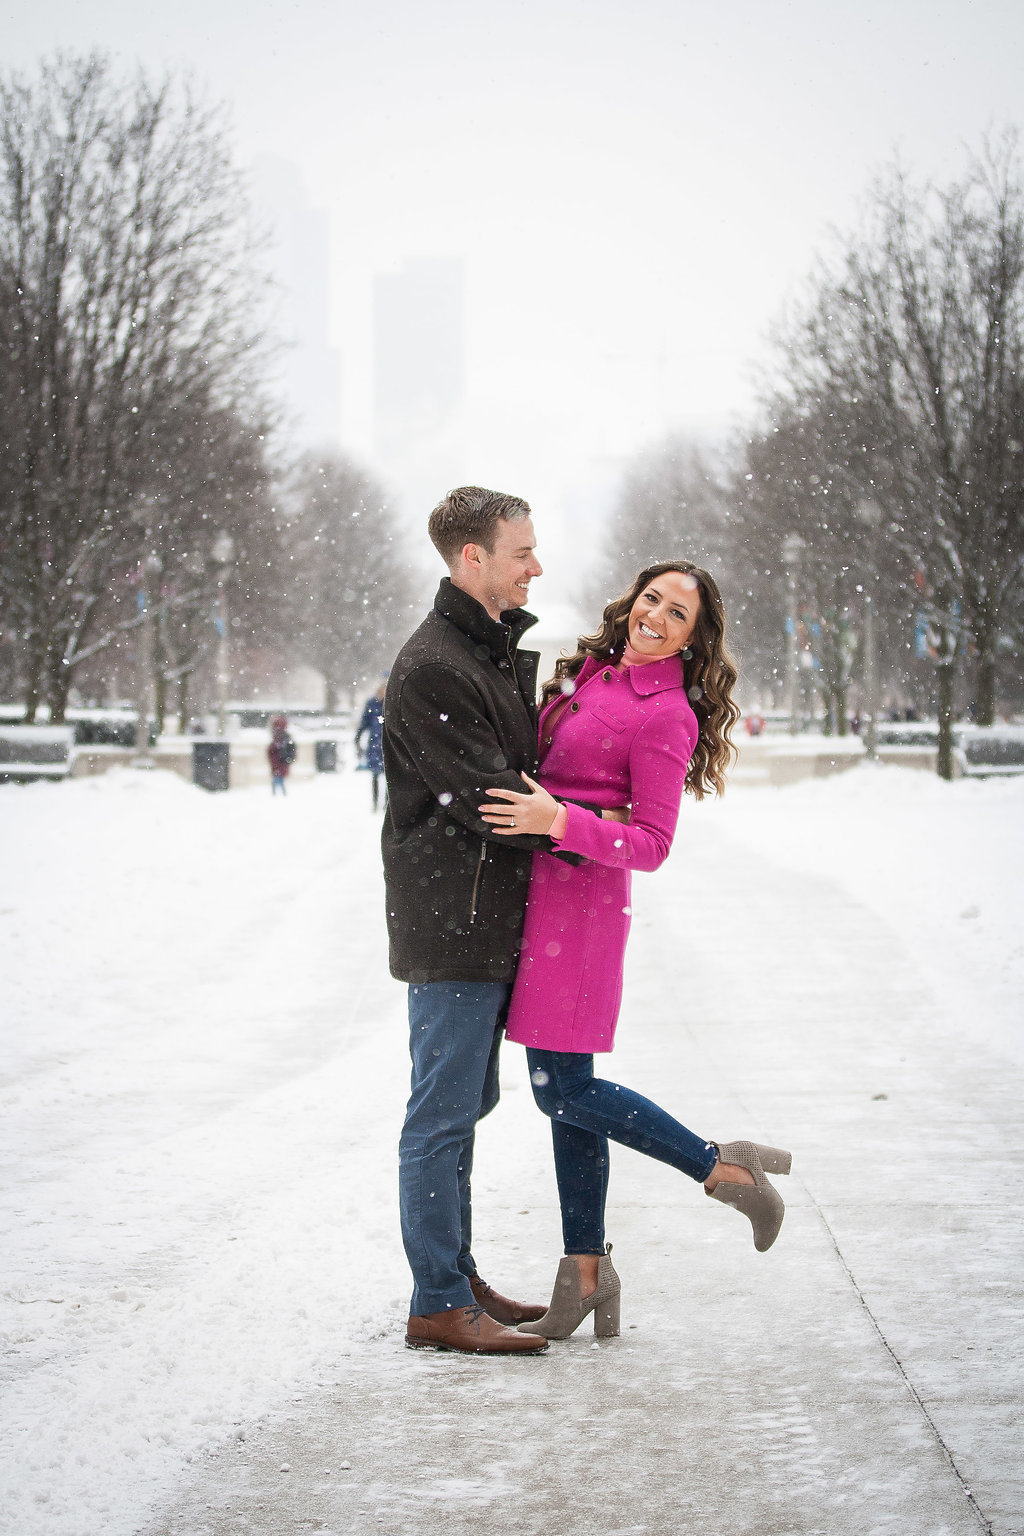 Millennium Park Chicago Illinois Winter Engagement Photographer Taylor Ingles 3